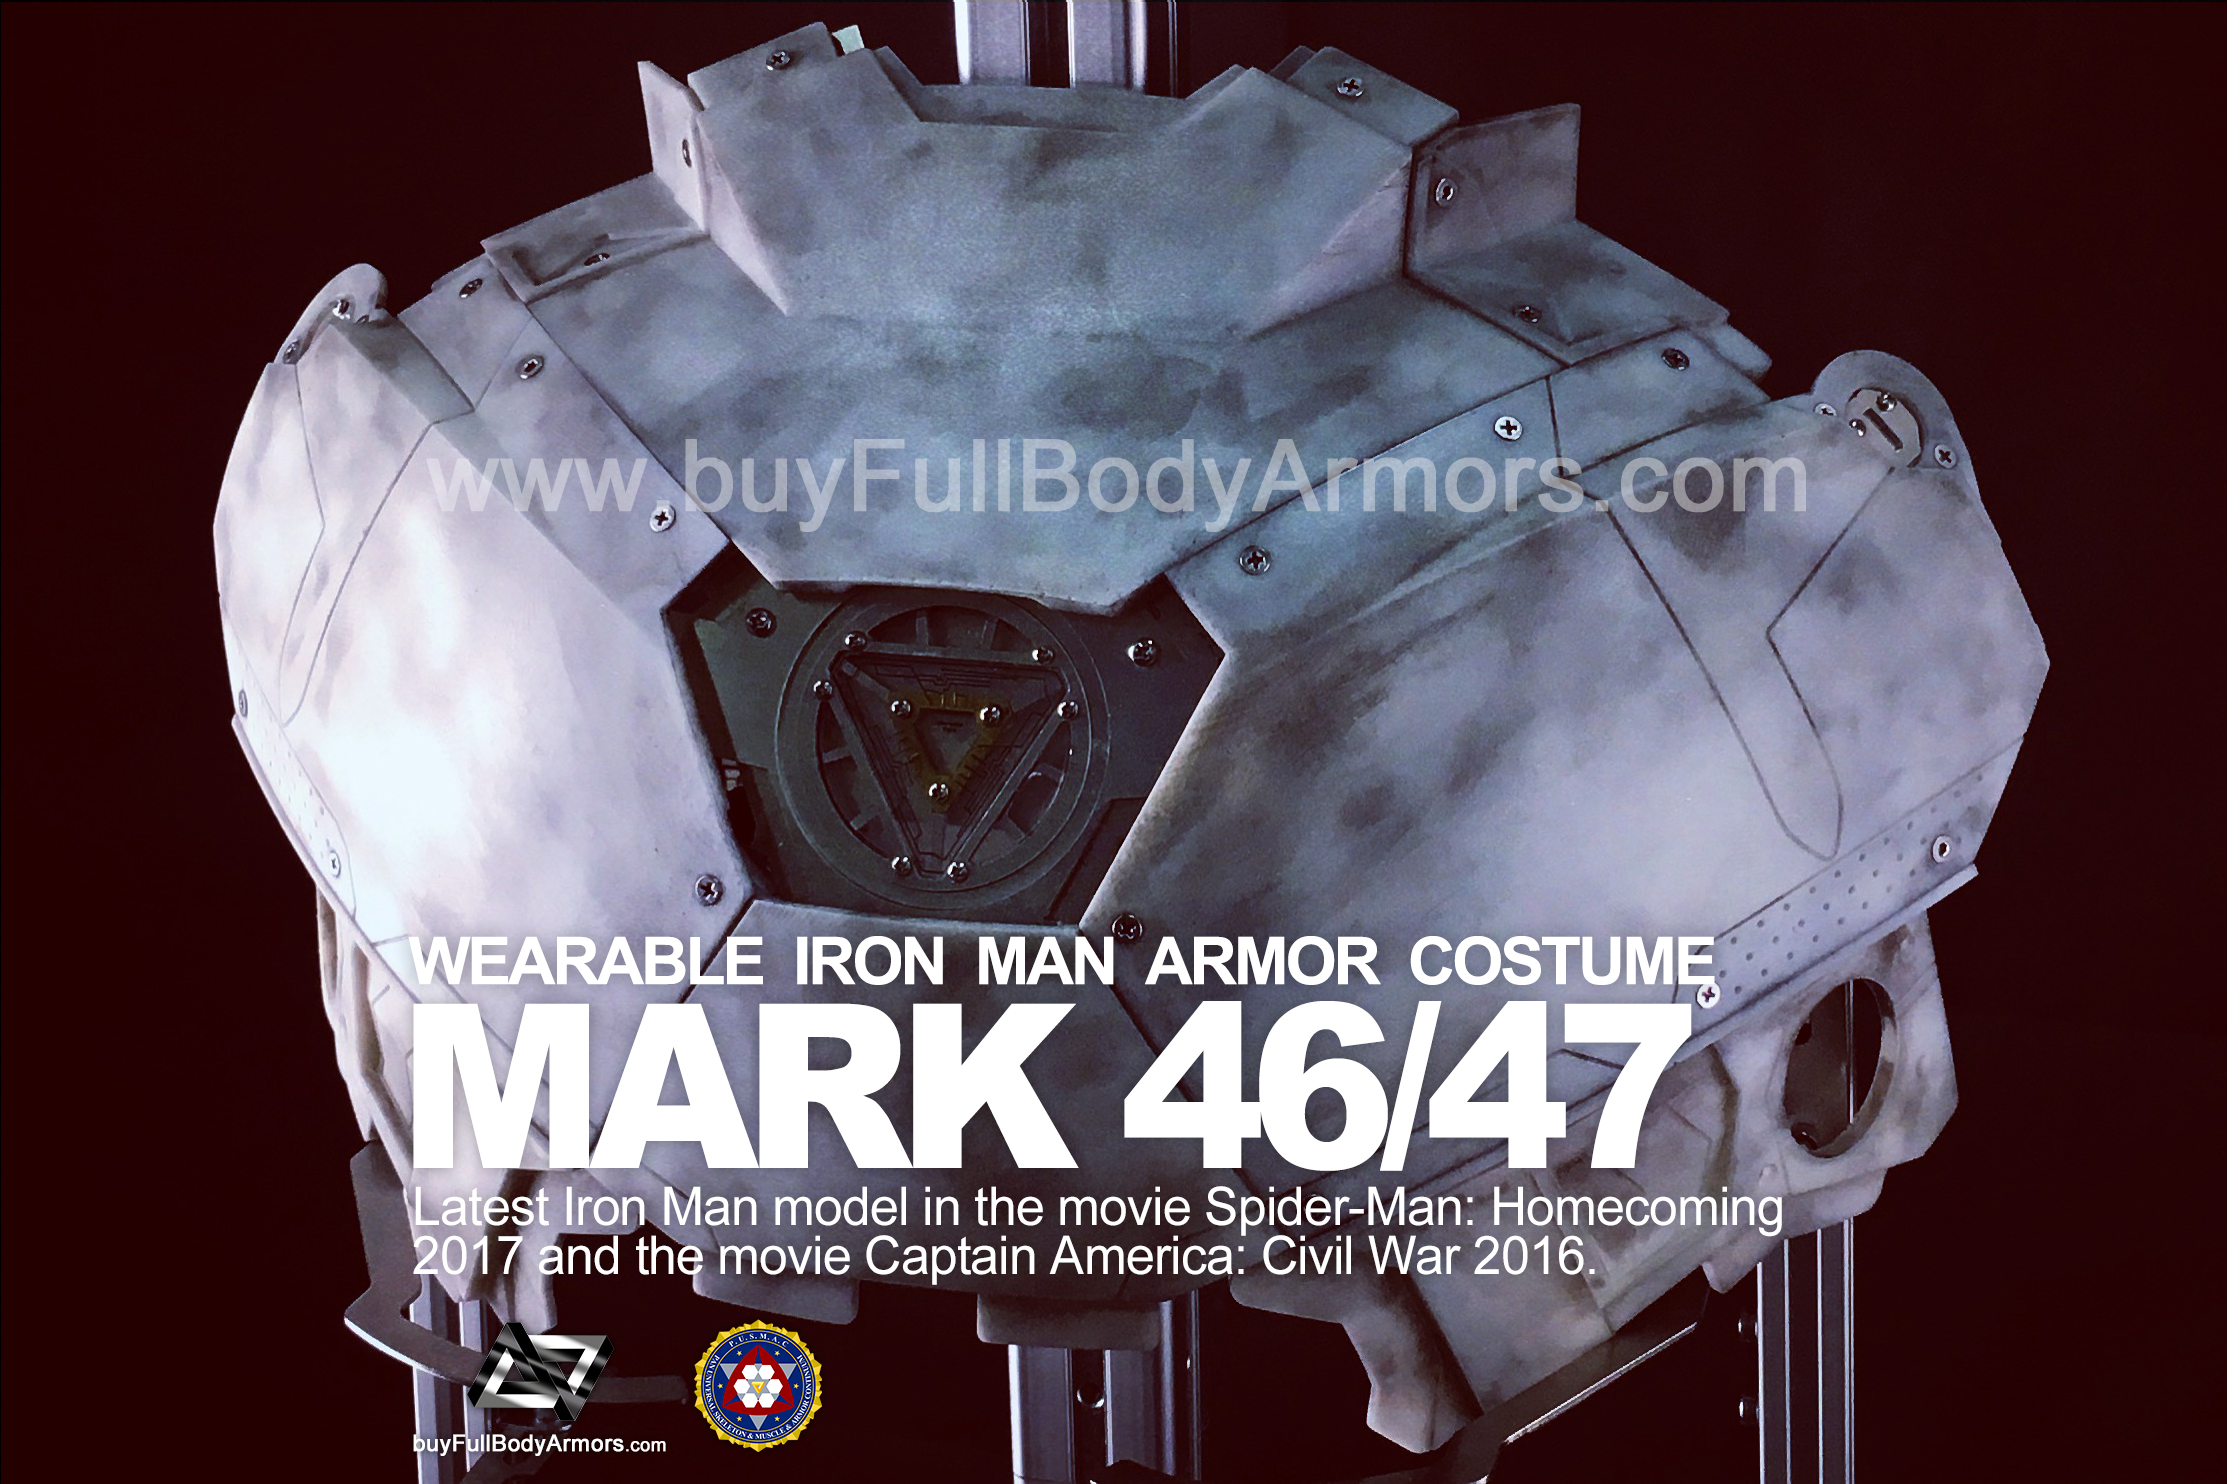 Wearable Iron Man Mark 47 / 46 Armor Costume Suit Chest Armor Prototype 1